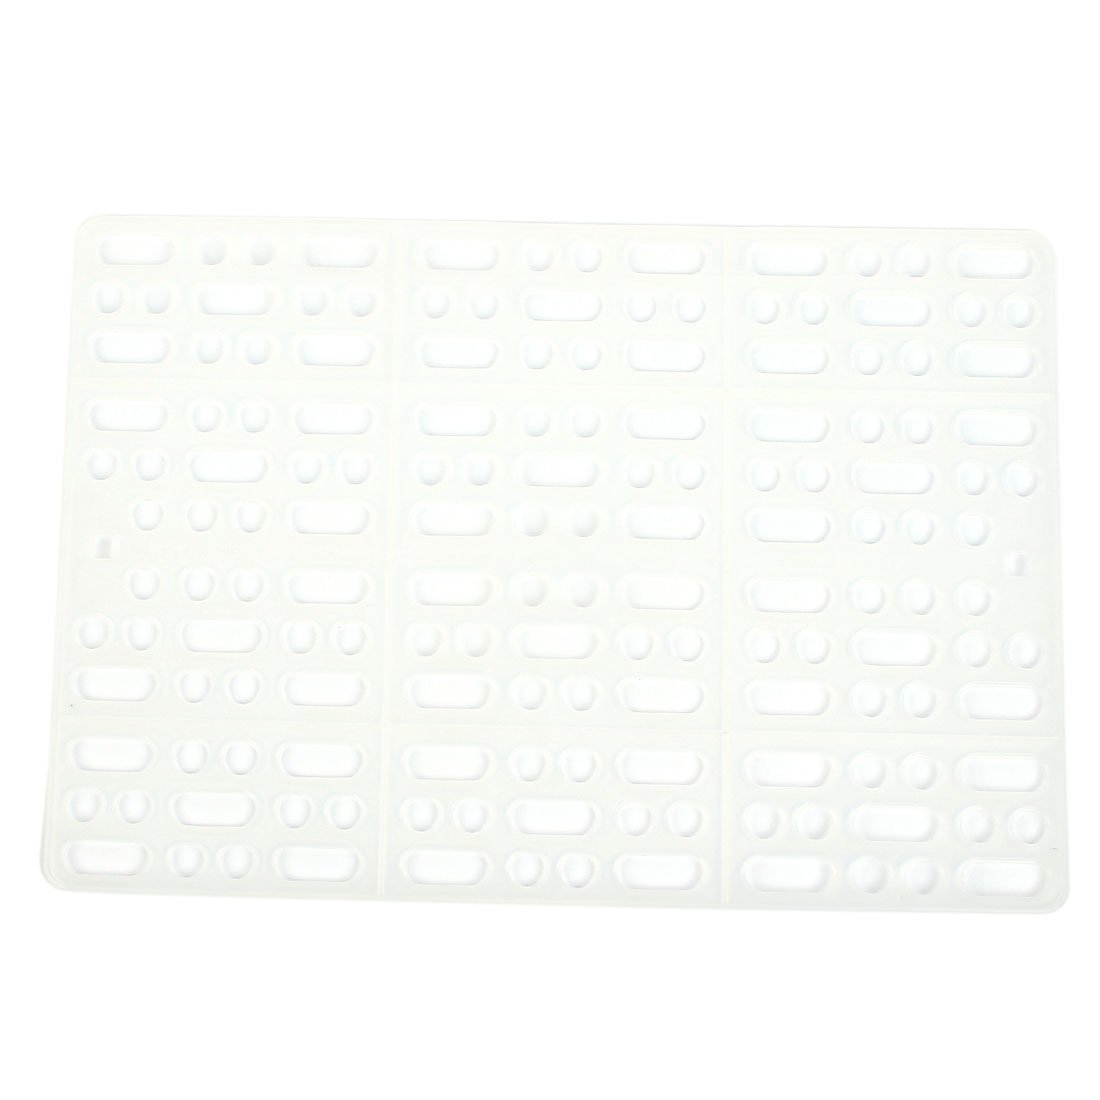 1Pc Plastic Pet Dog Cage Hole Design Mat Board Plate w Two Fixed Tabs 34.5cm x 25cm White